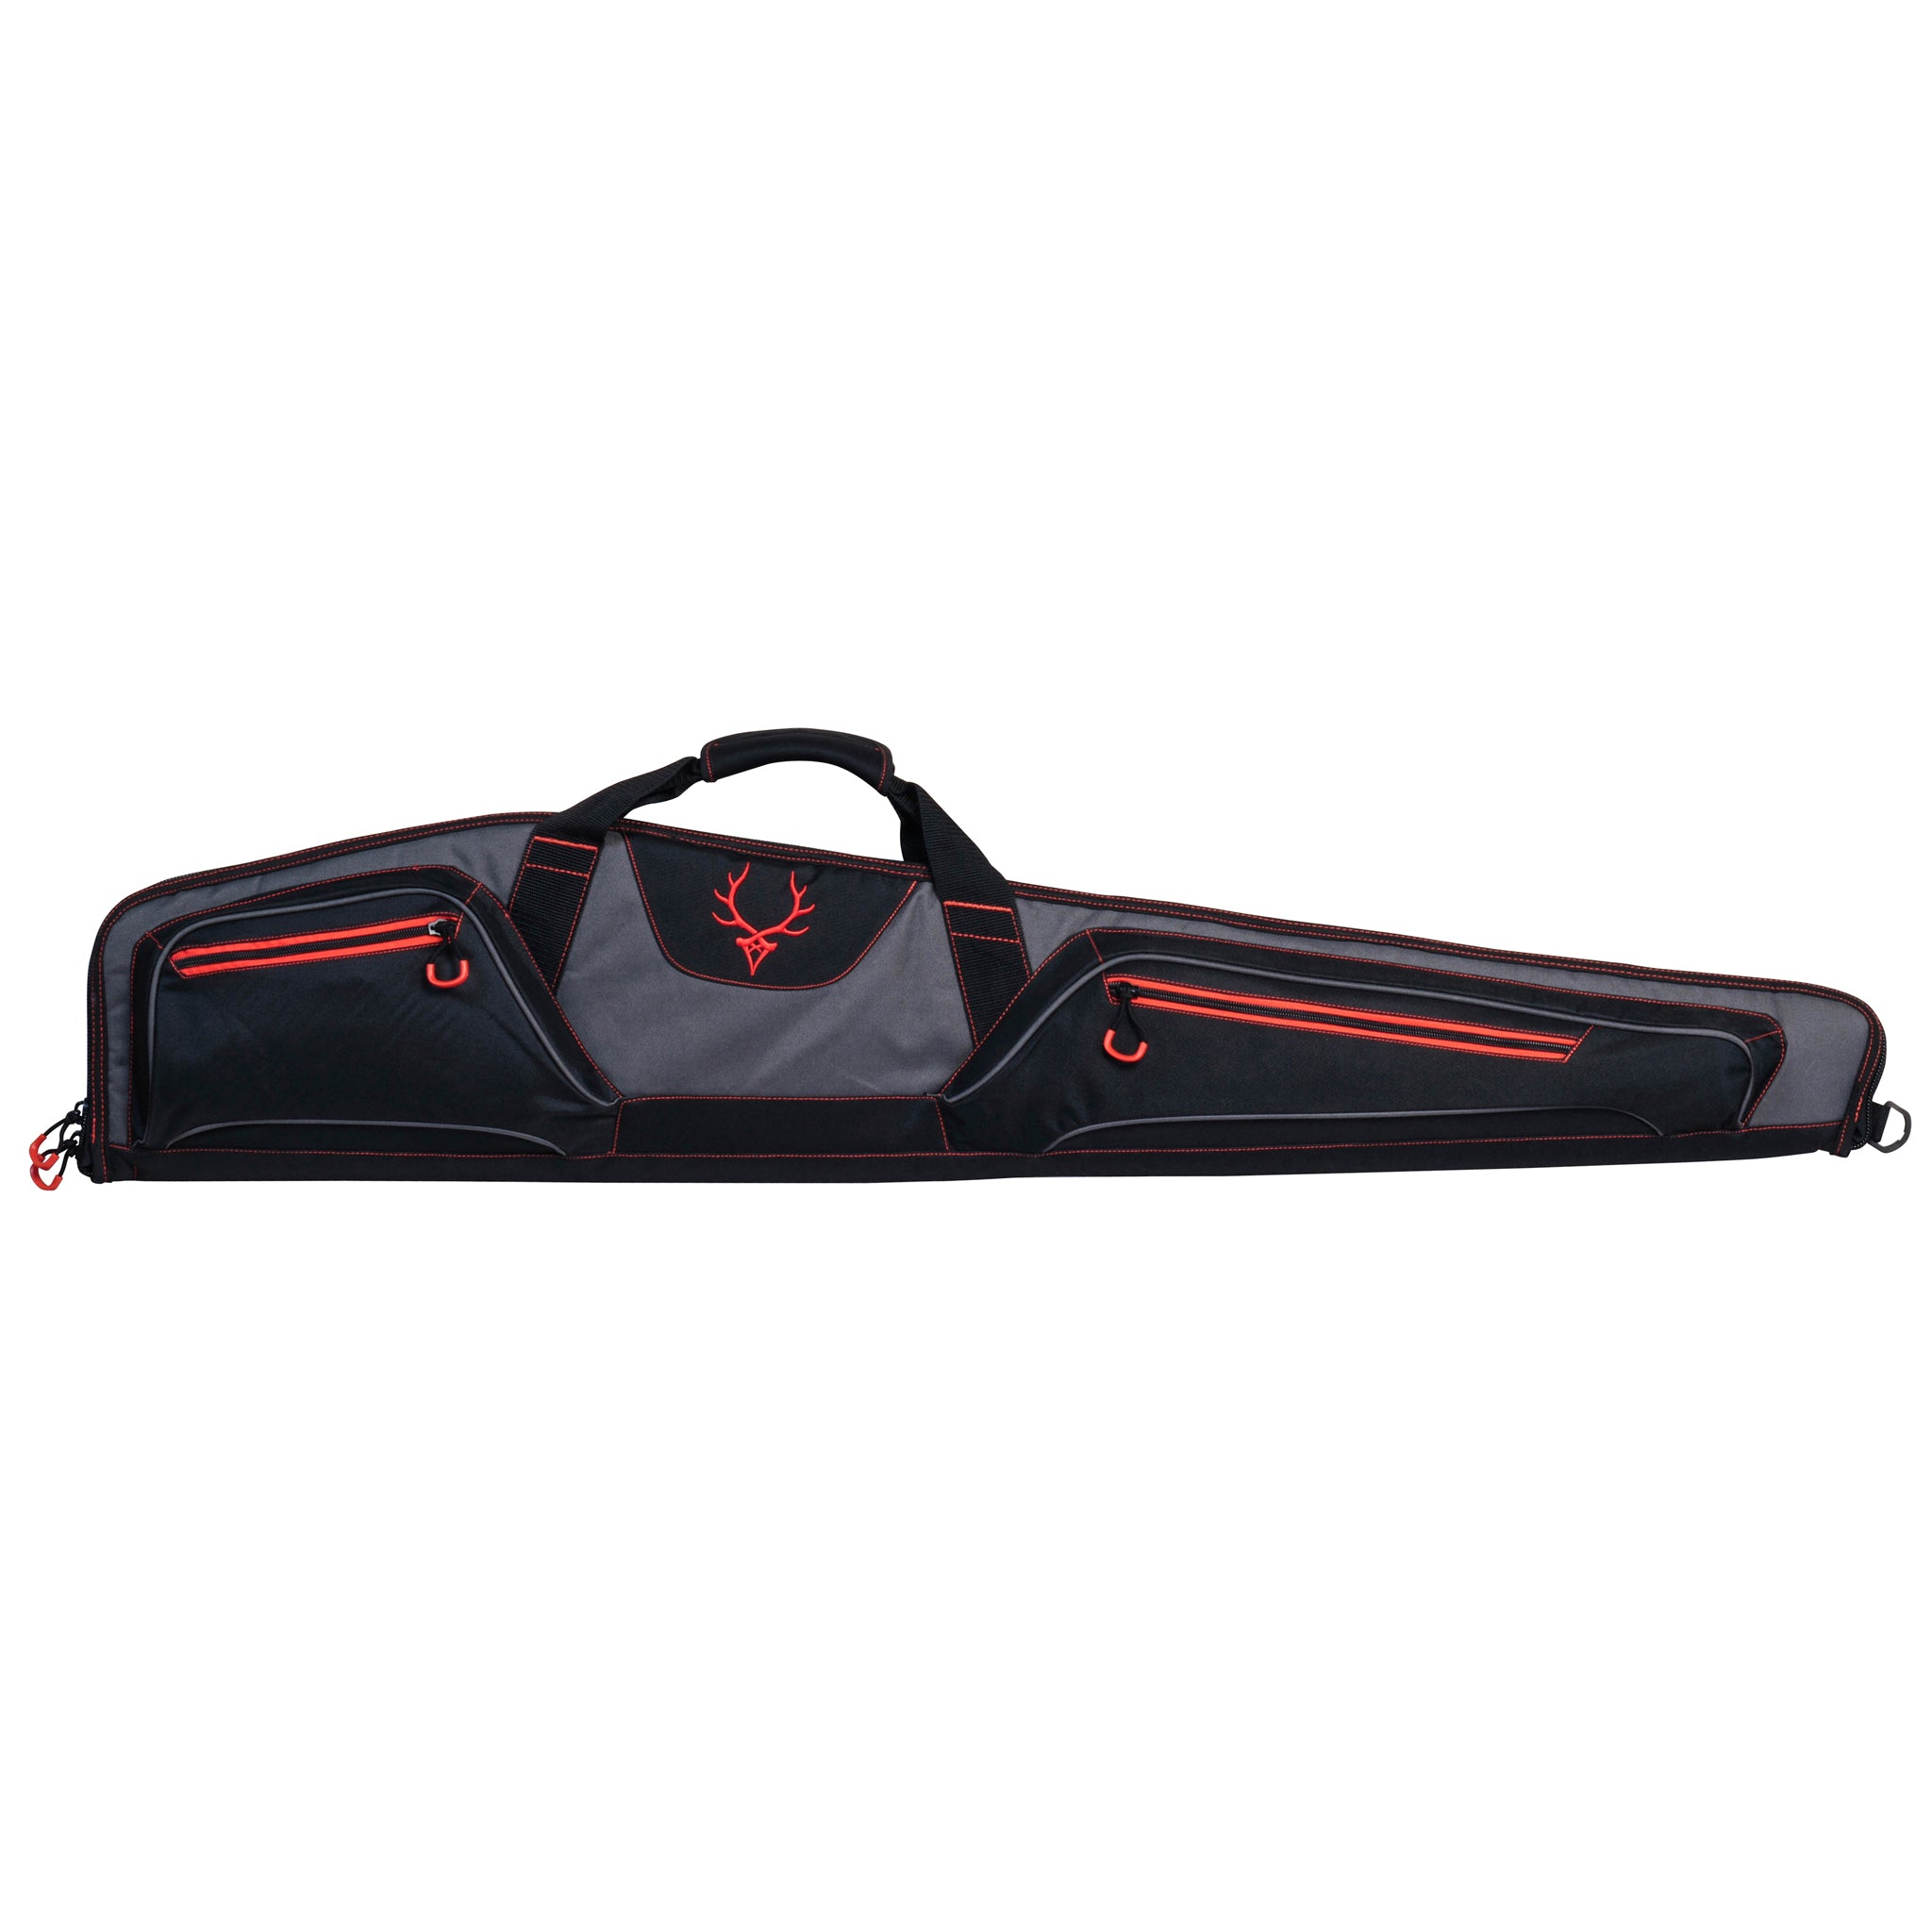 Durango Series Rifle Case